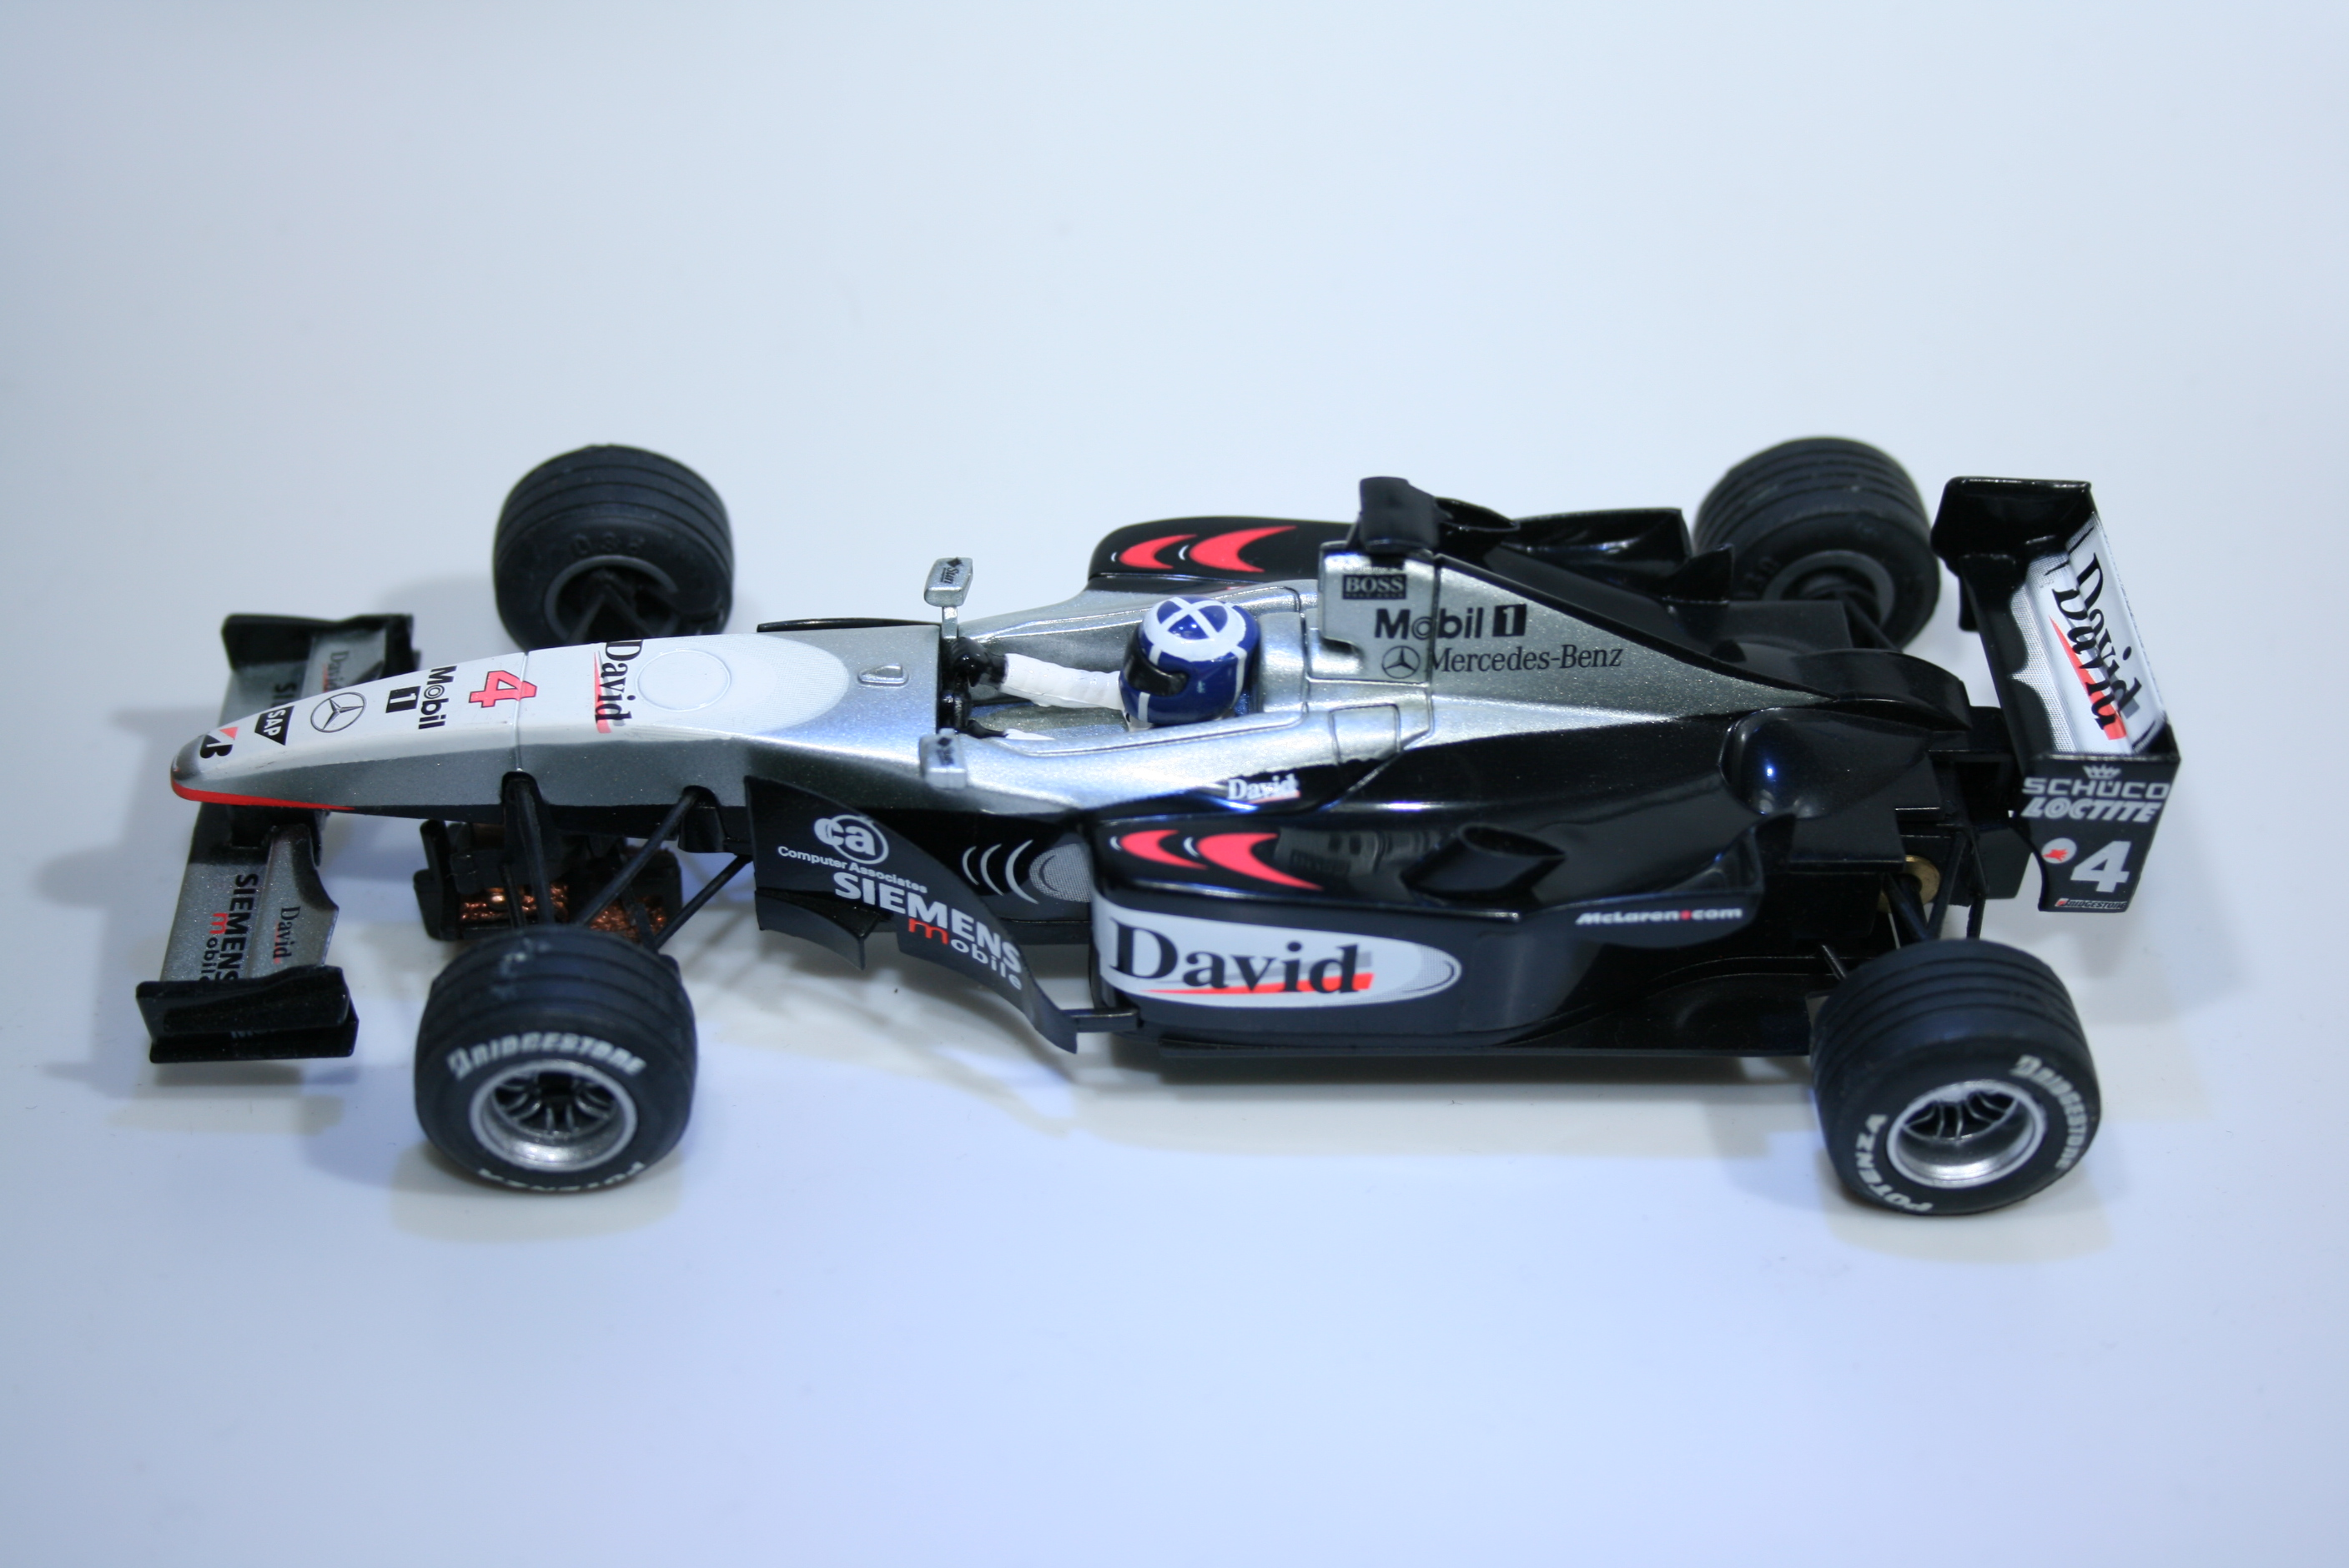 49 Mclaren MP4/16 2002 D Coulthard SCX 60870 2002 Boxed